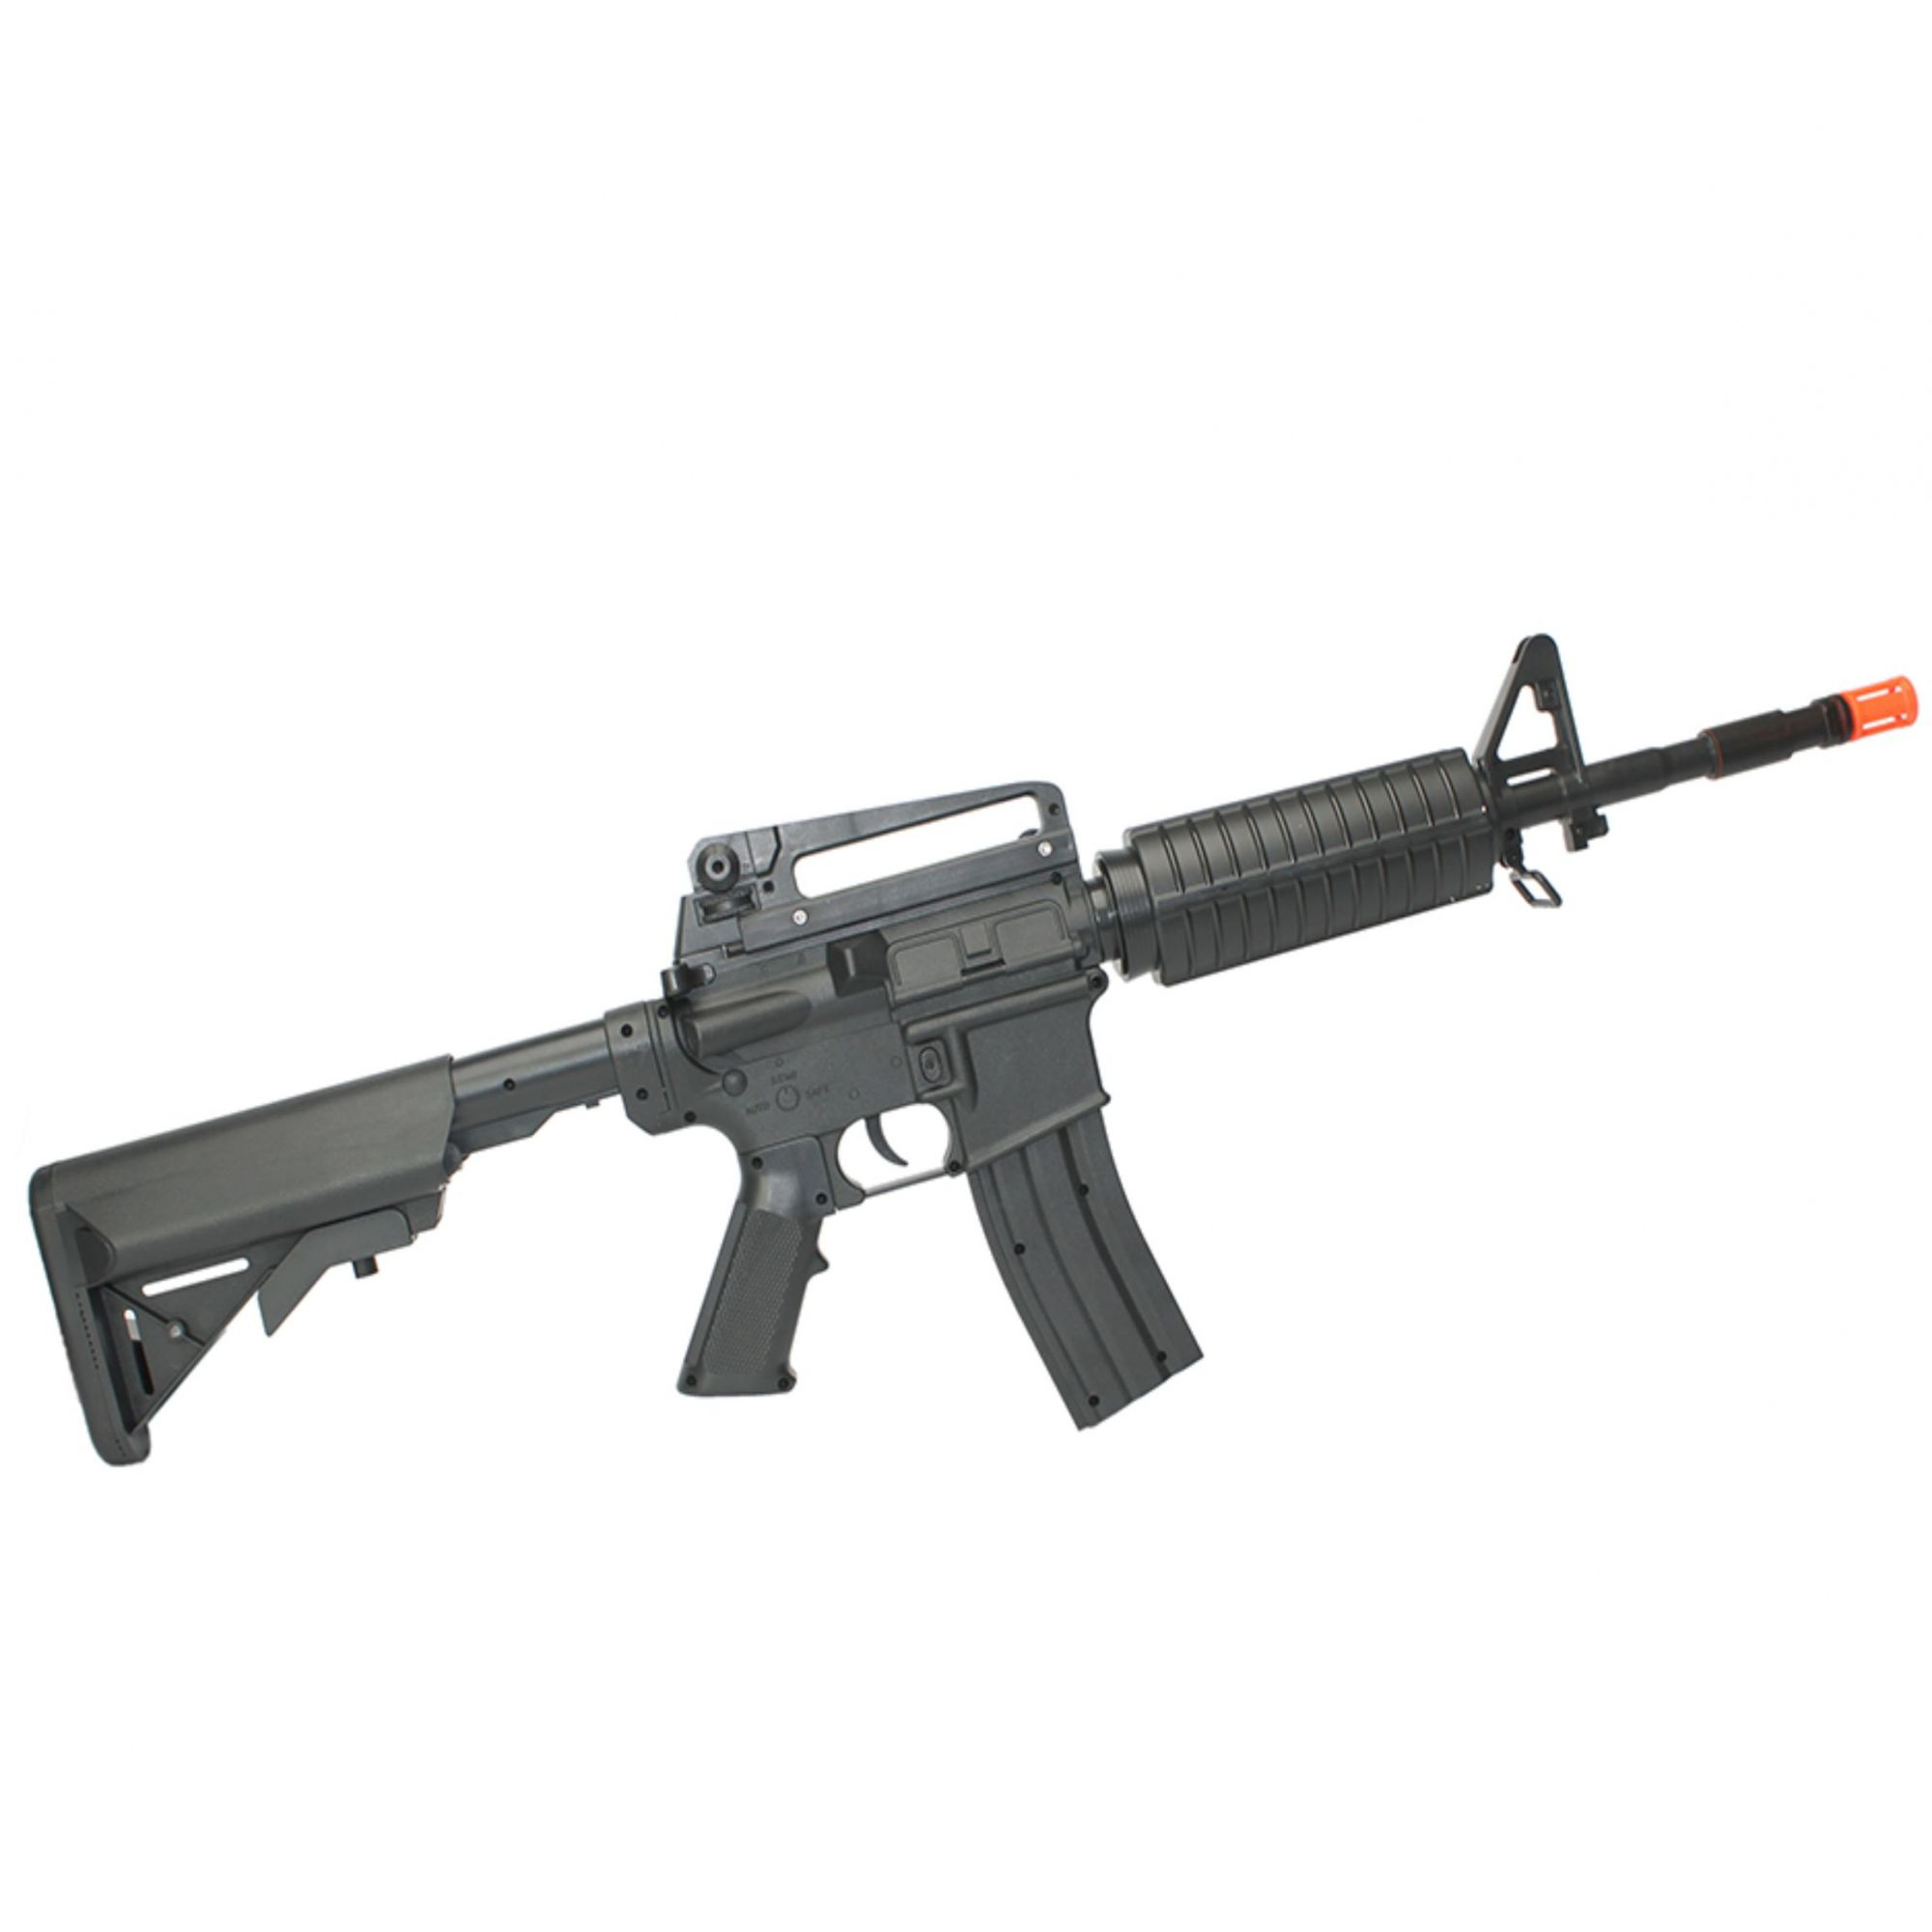 RIFLE AIRSOFT ROSSI VG M4A1 8908 6MM